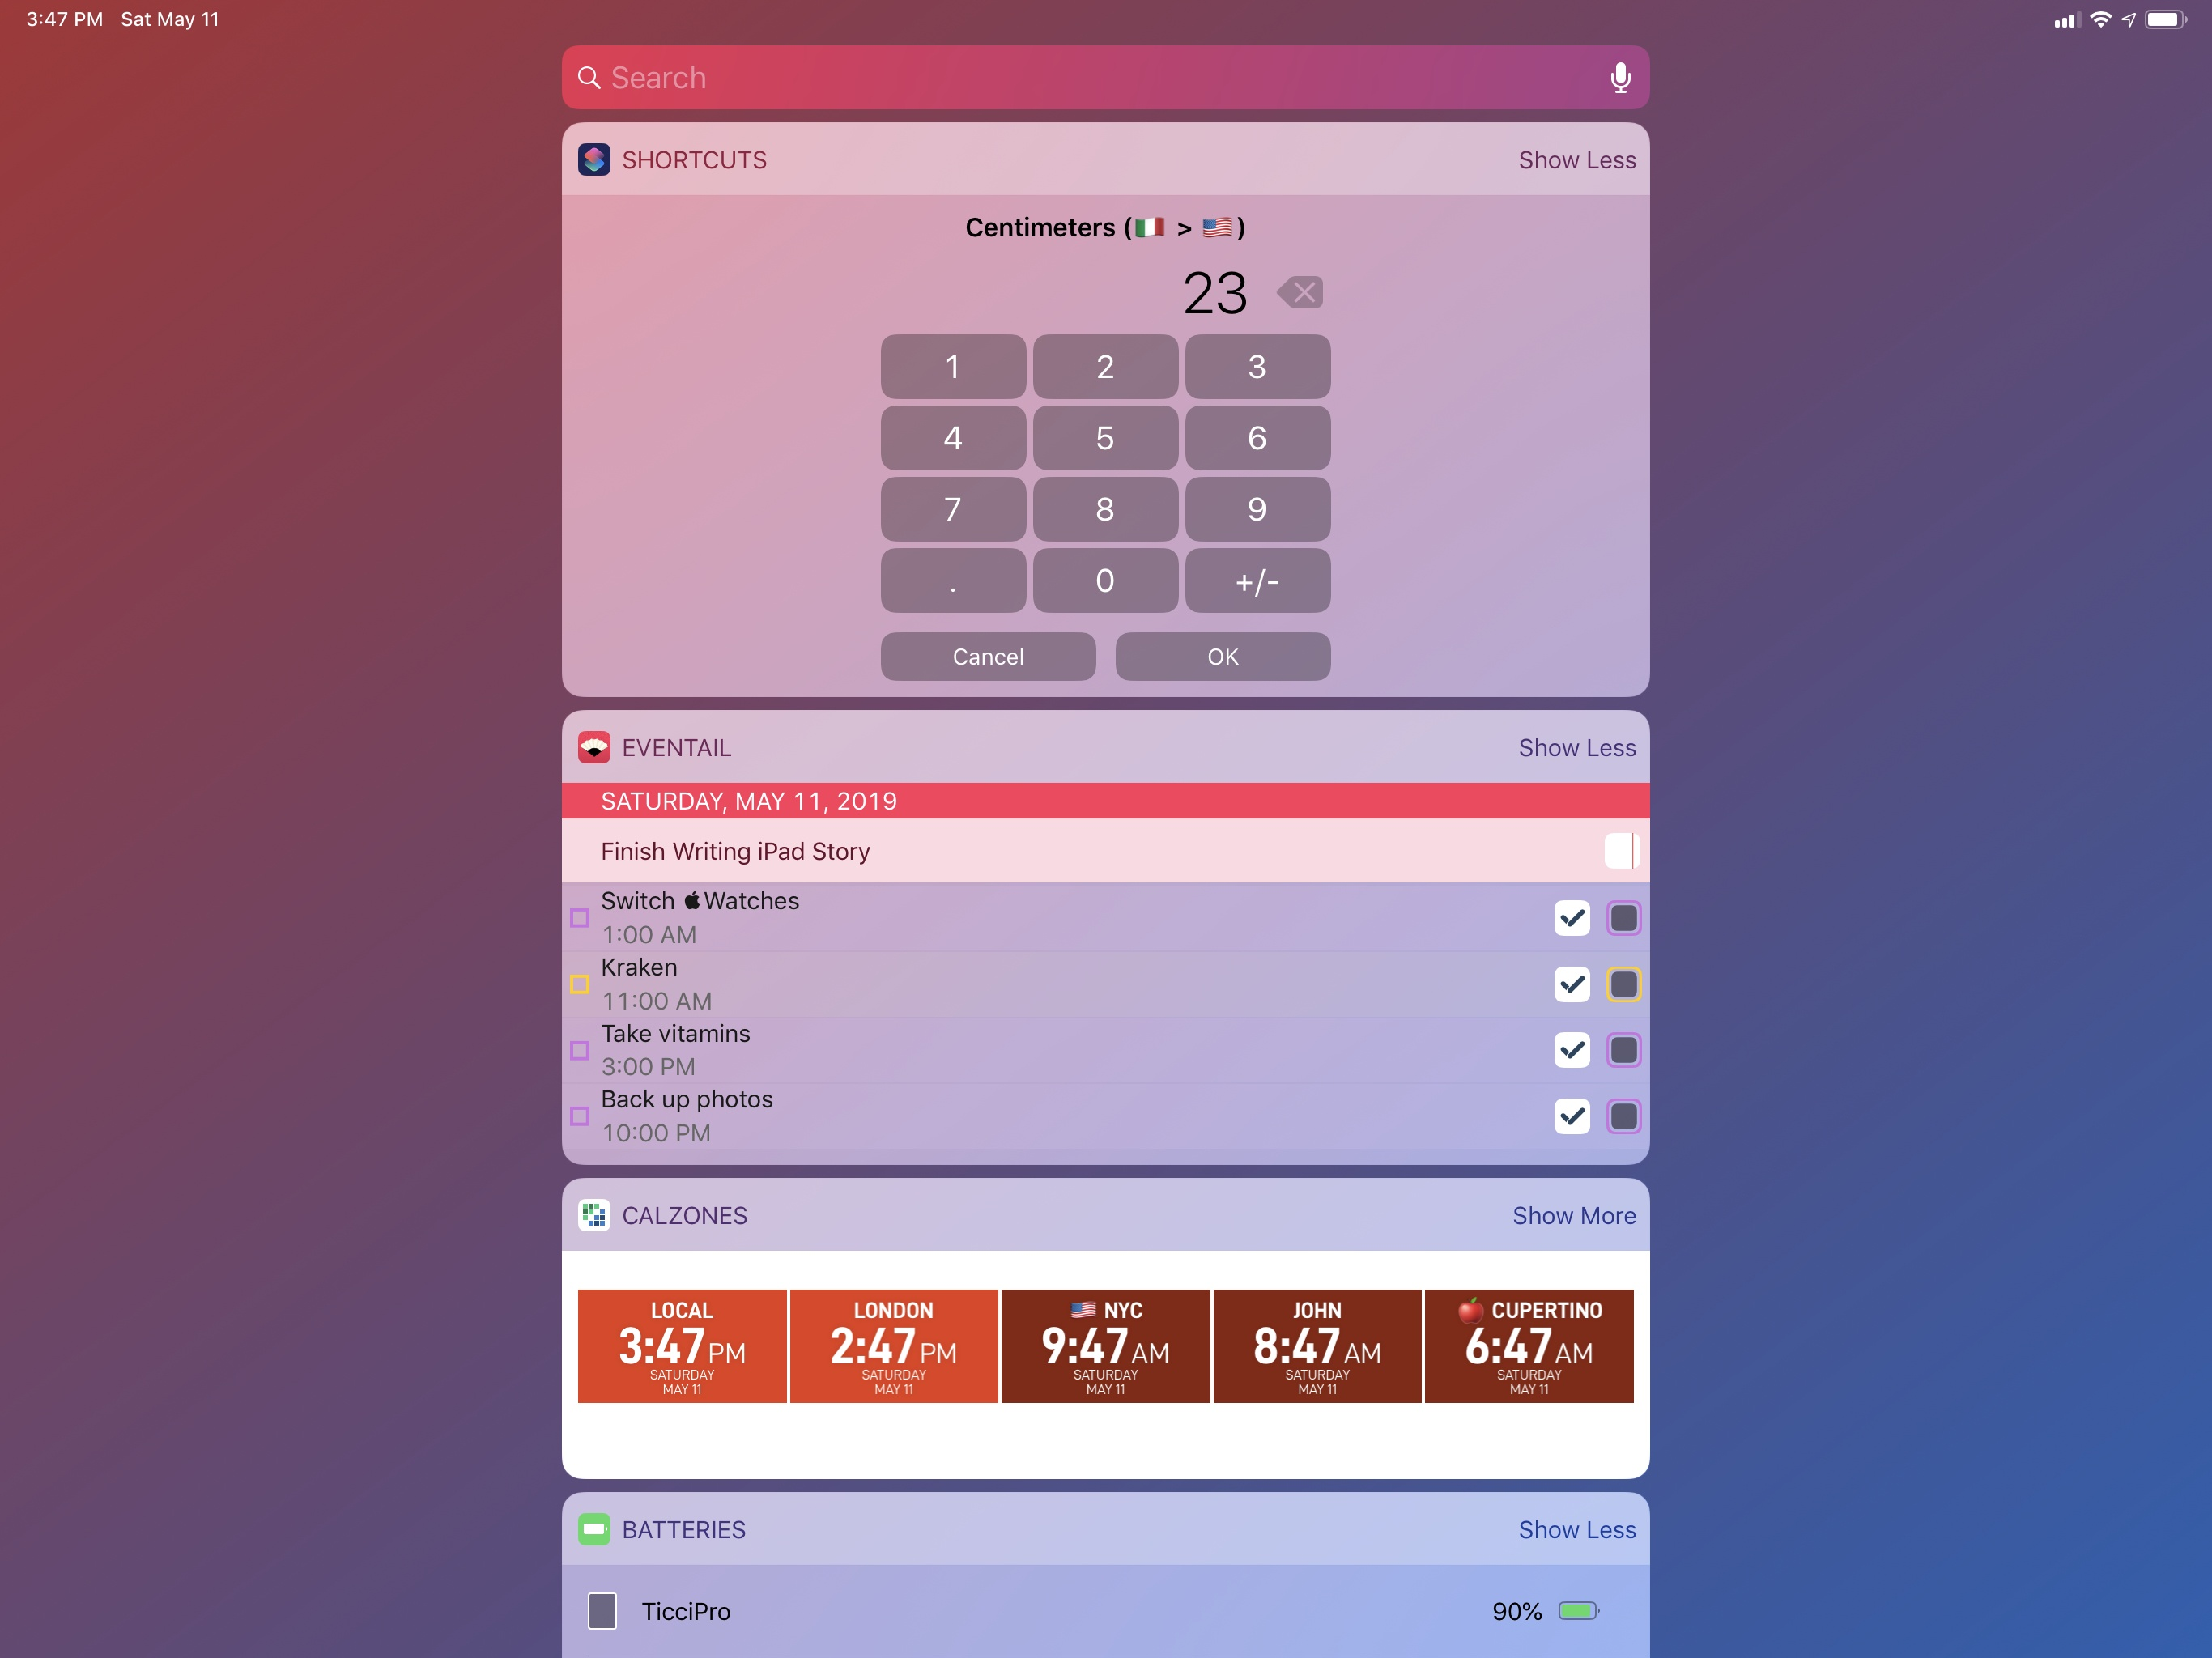 Converting between units of length from the Shortcuts widget.